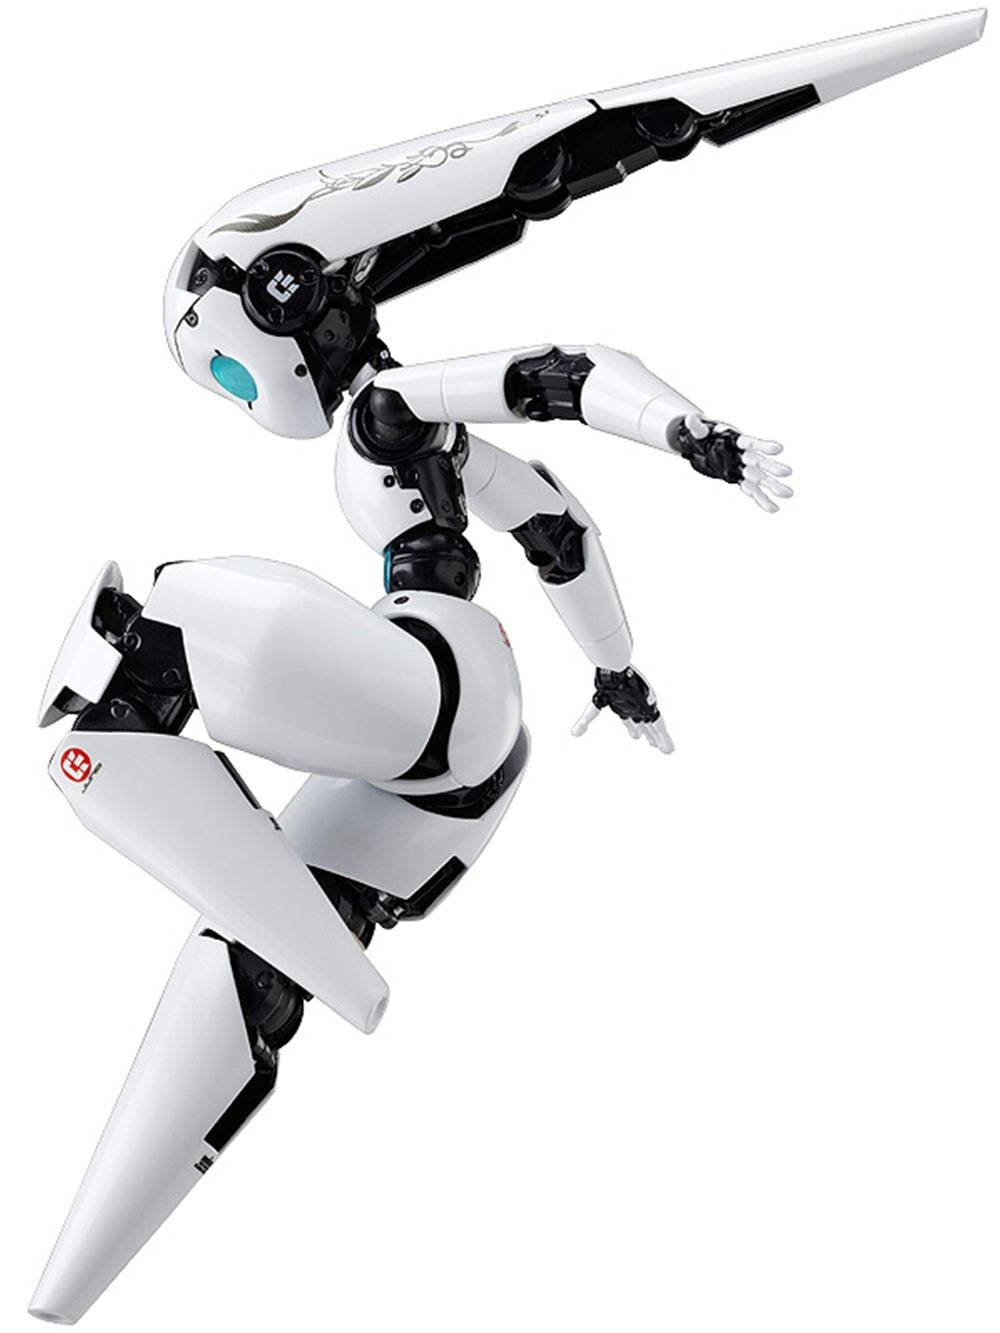 Max Factory Fireball Charming Drossel Figma Action Figure